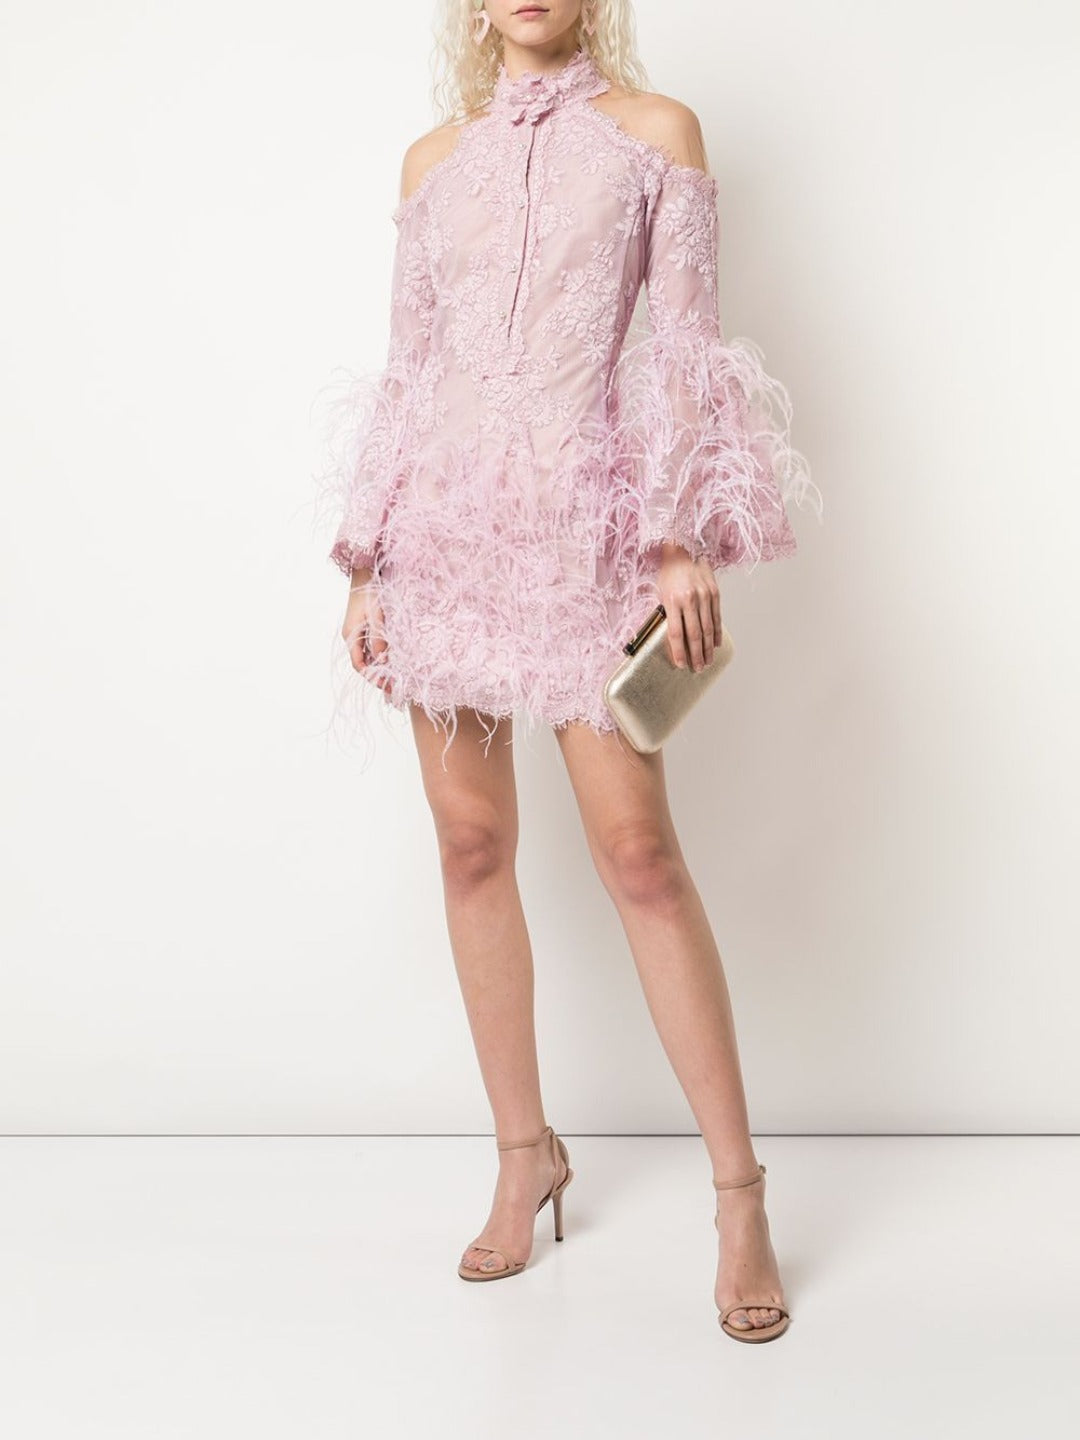 Feather Embellished Cocktail Dress